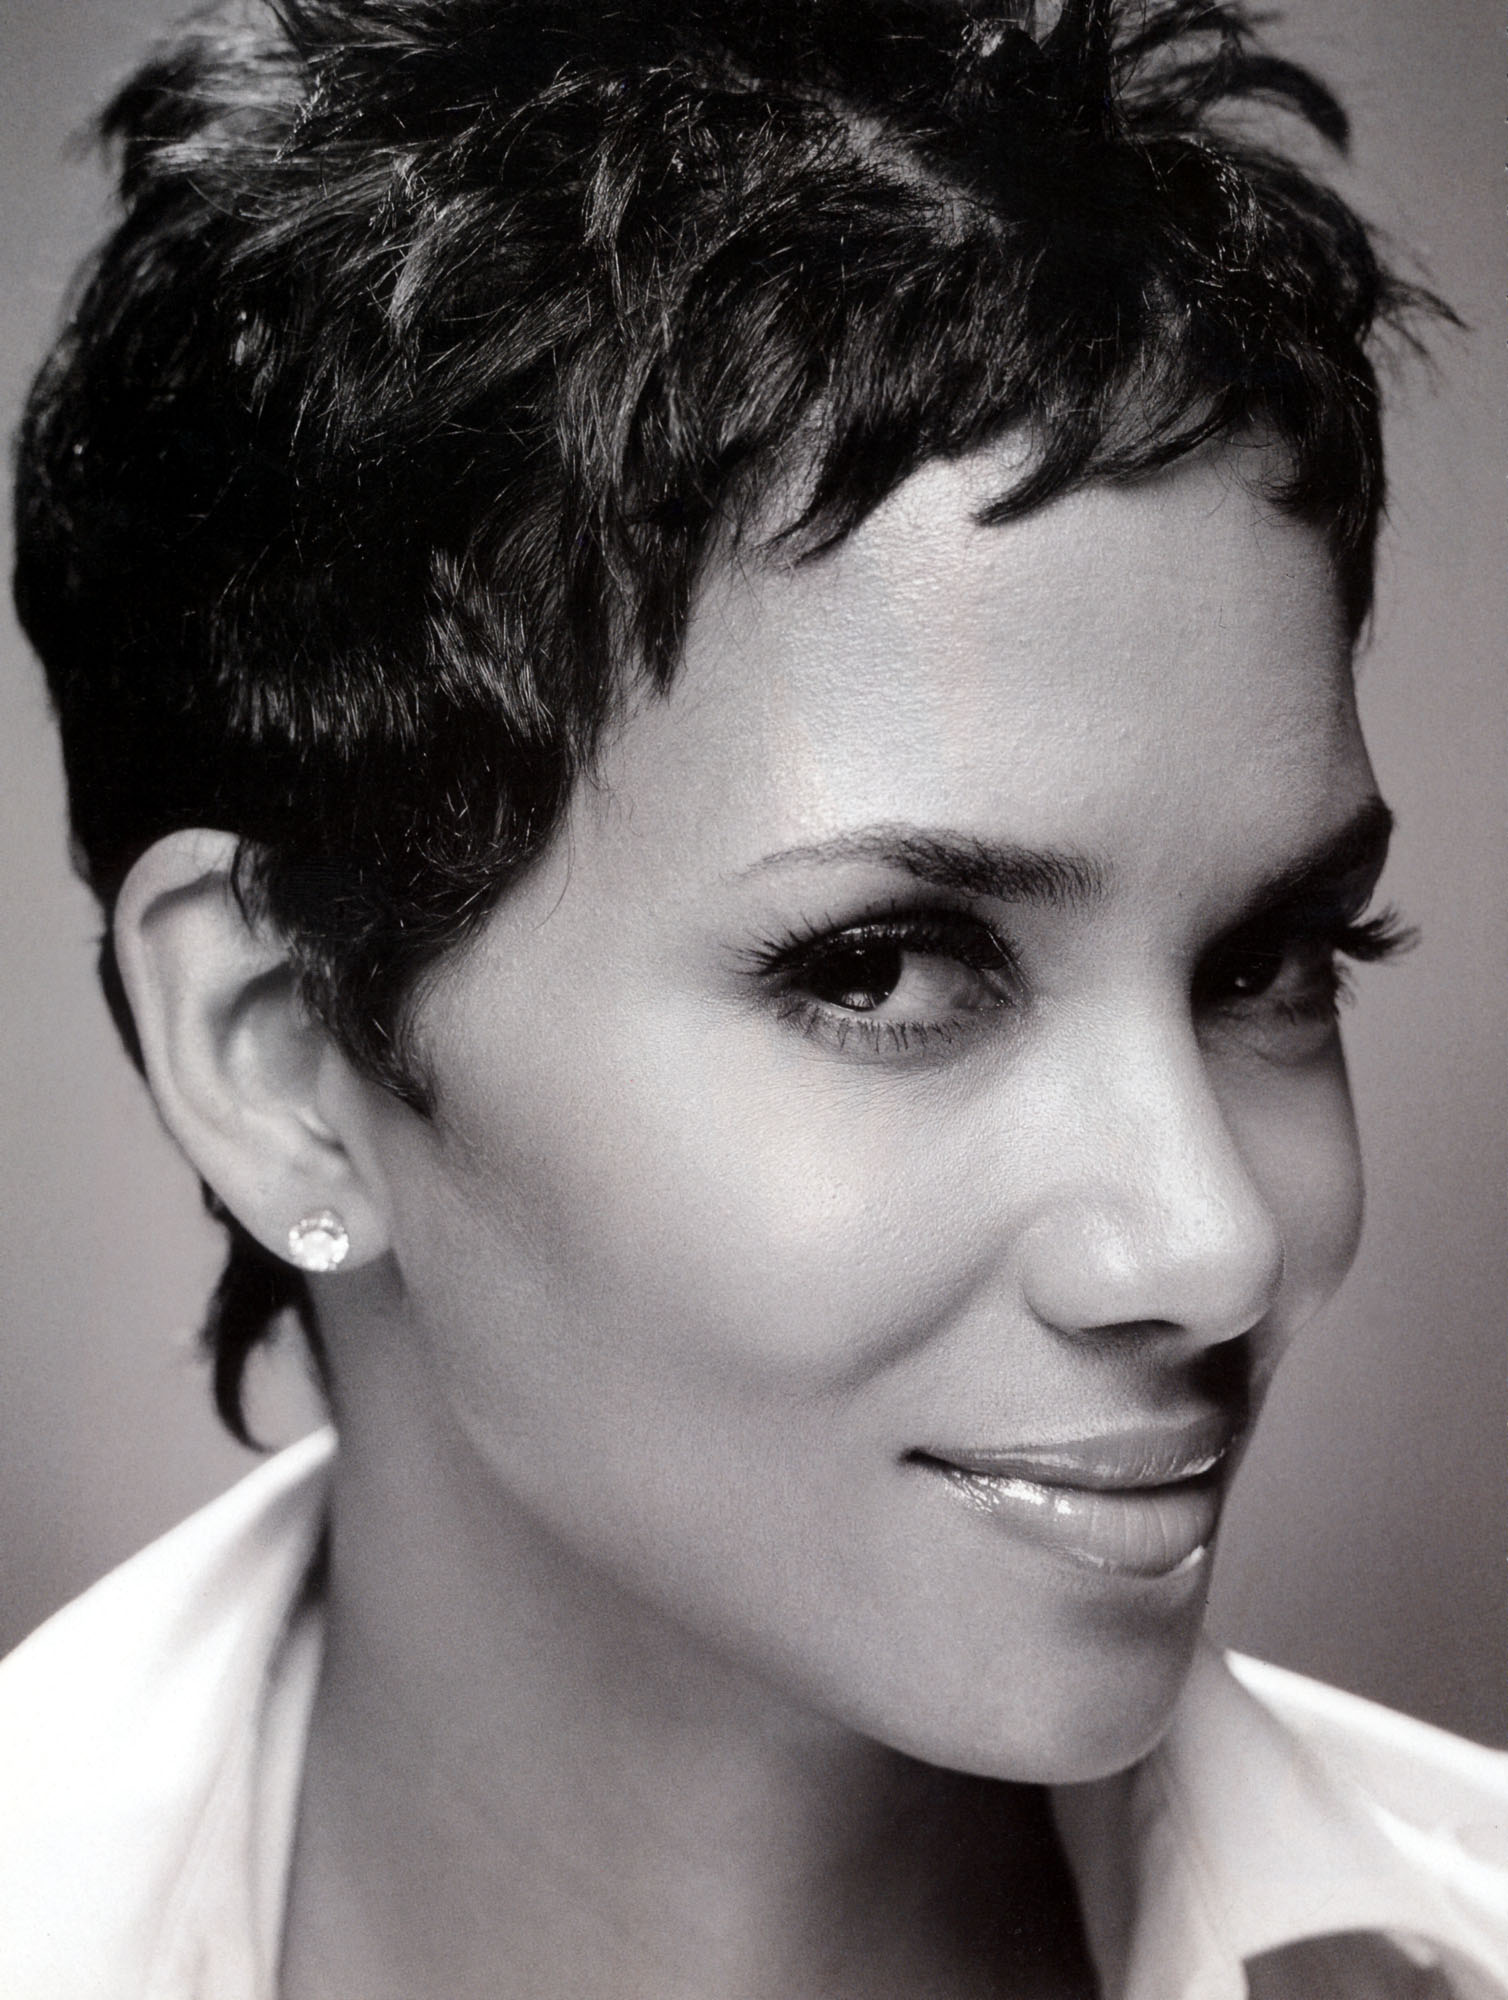 http://www.theplace.ru/archive/halle_berry/img/halle333.jpg